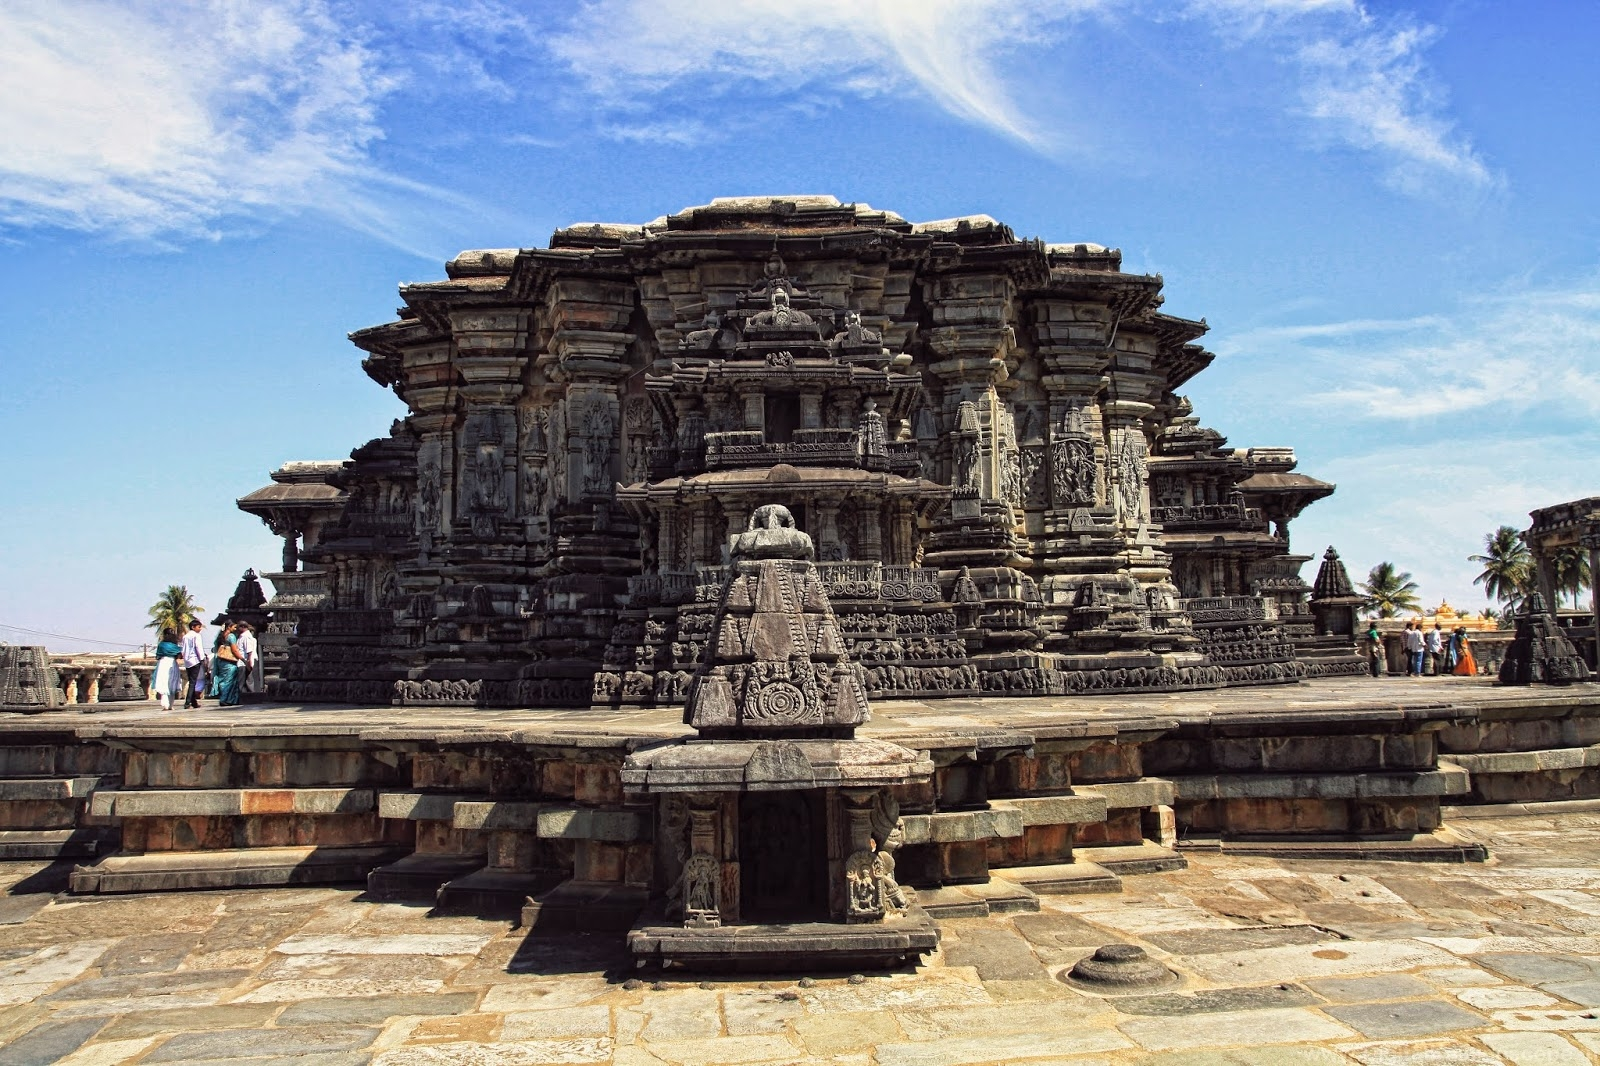 Belur Tourist Guide - Land of Temples and Kings